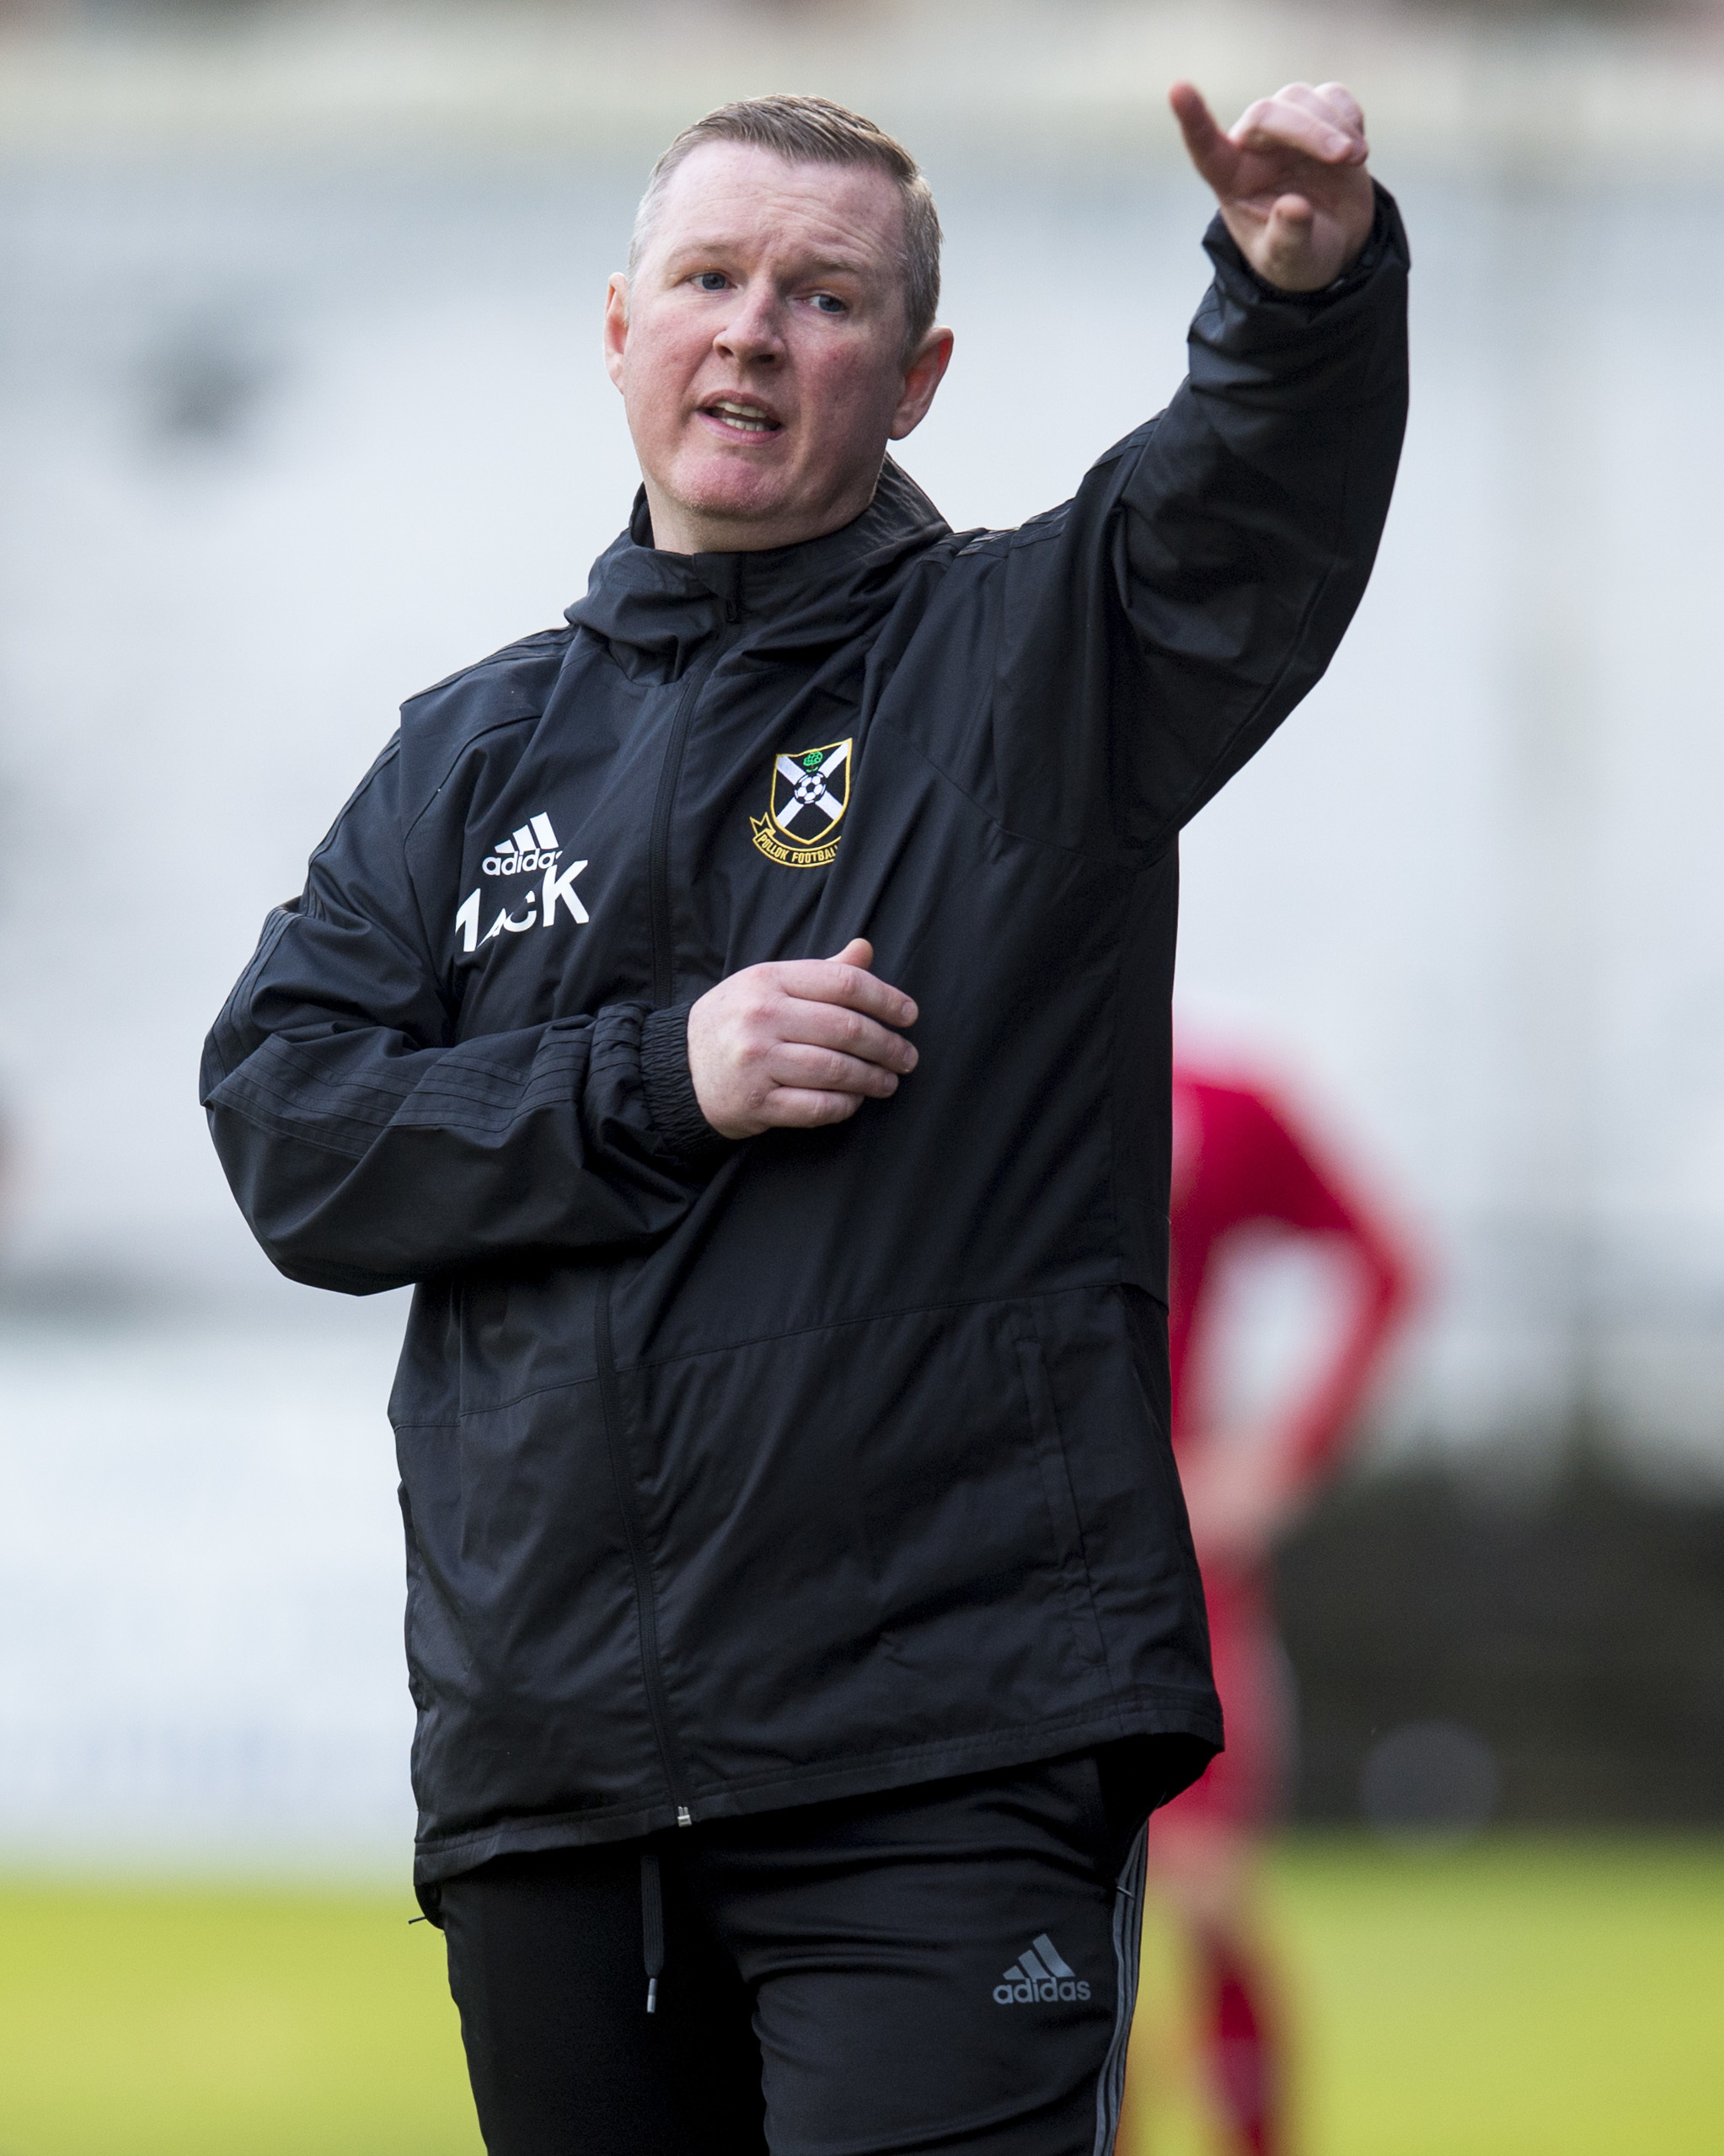 01/12/18 WEST PREMIERSHIP.POLLOK v GLENAFTON ATHLETIC (1-1) (3-0 ON PENS).NEWLANDSFIELD PARK - GLASGOW.Pollok manager Murdie MacKinnon.